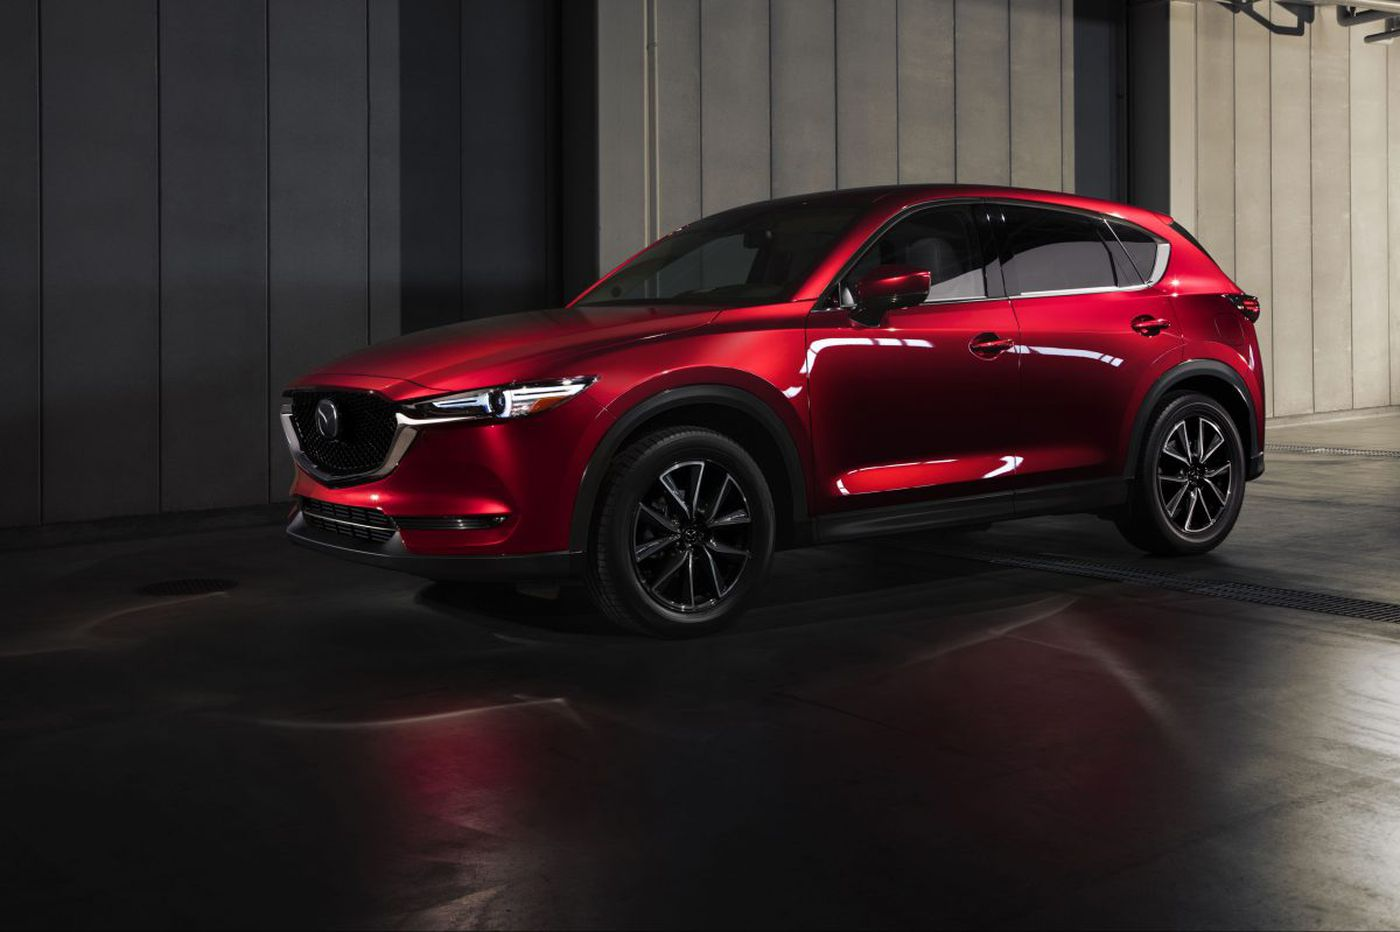 Mazda takes a good thing - its CX-5 - and tinkers with it